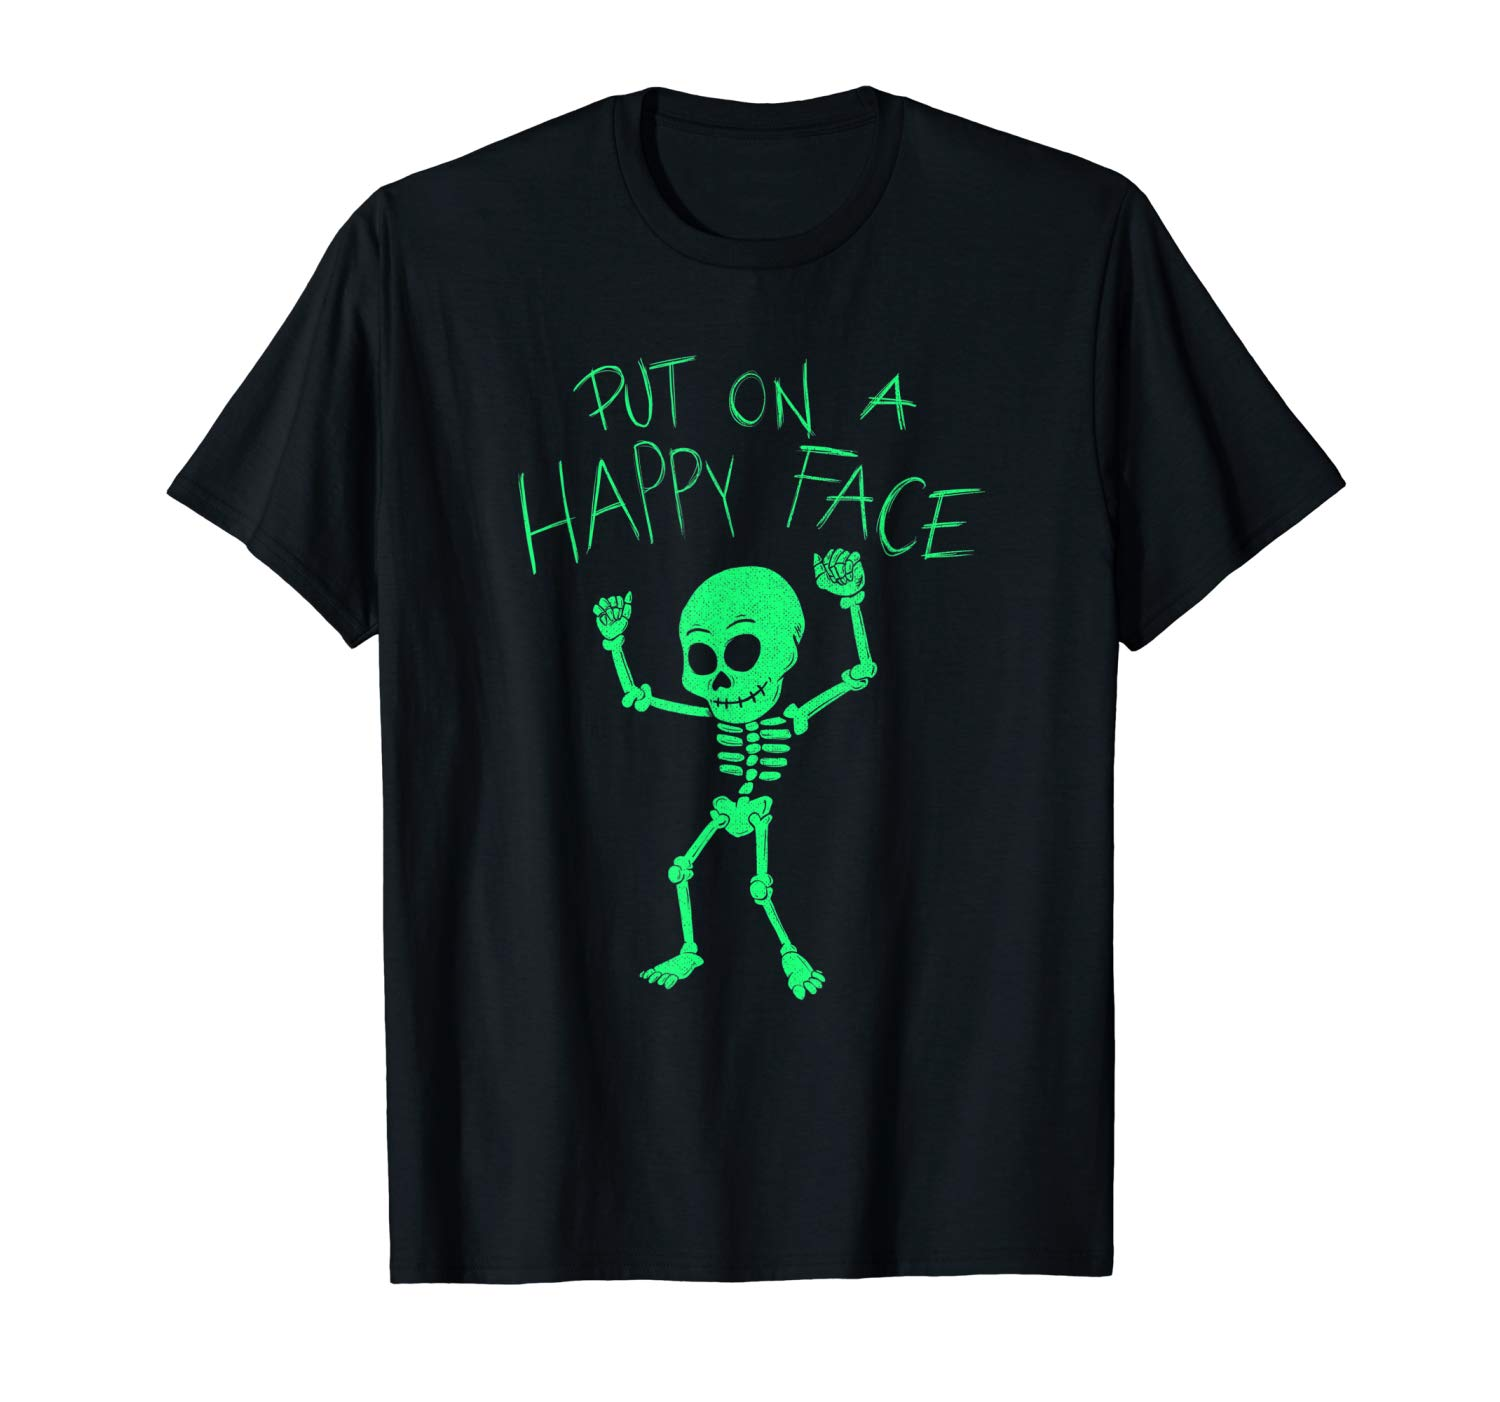 T-Shirt: Dancing Skelett Put On A Happy Face Dab T-Shirt